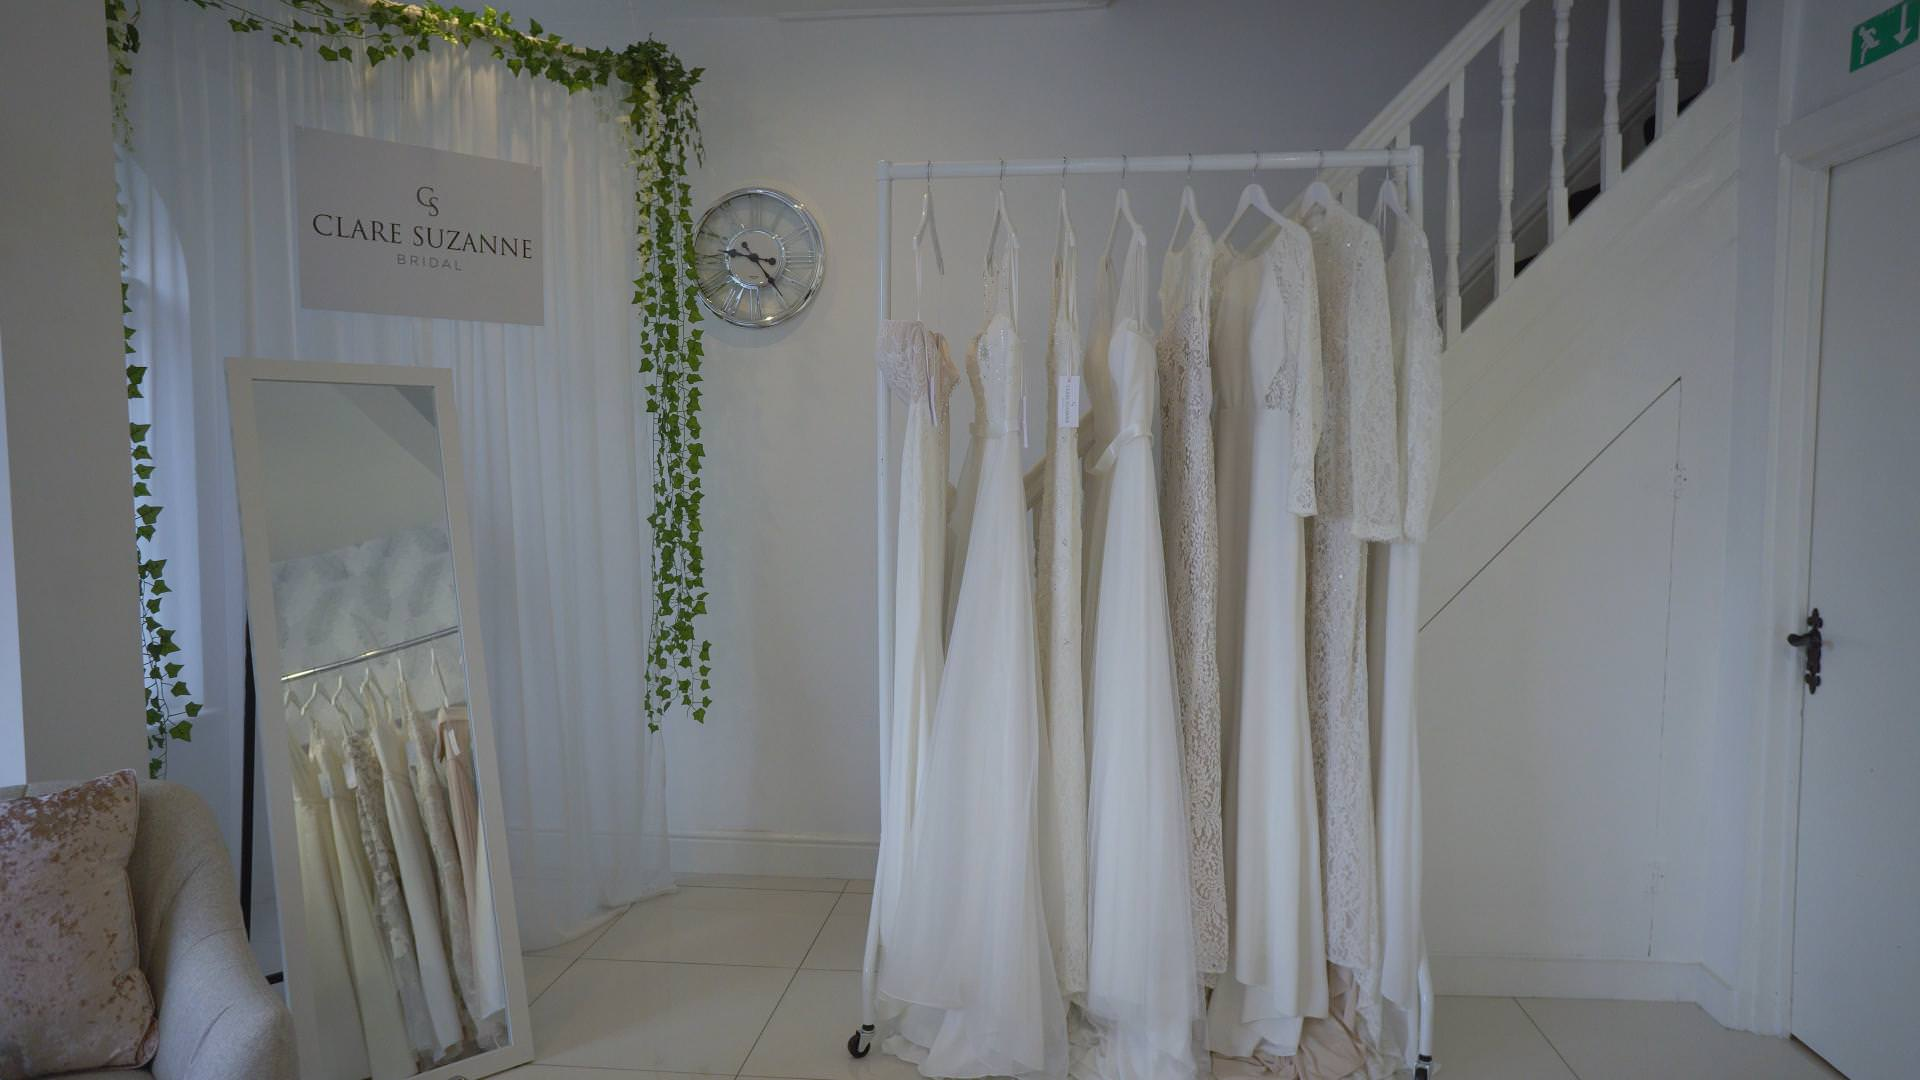 video still of bridal boutique dresses